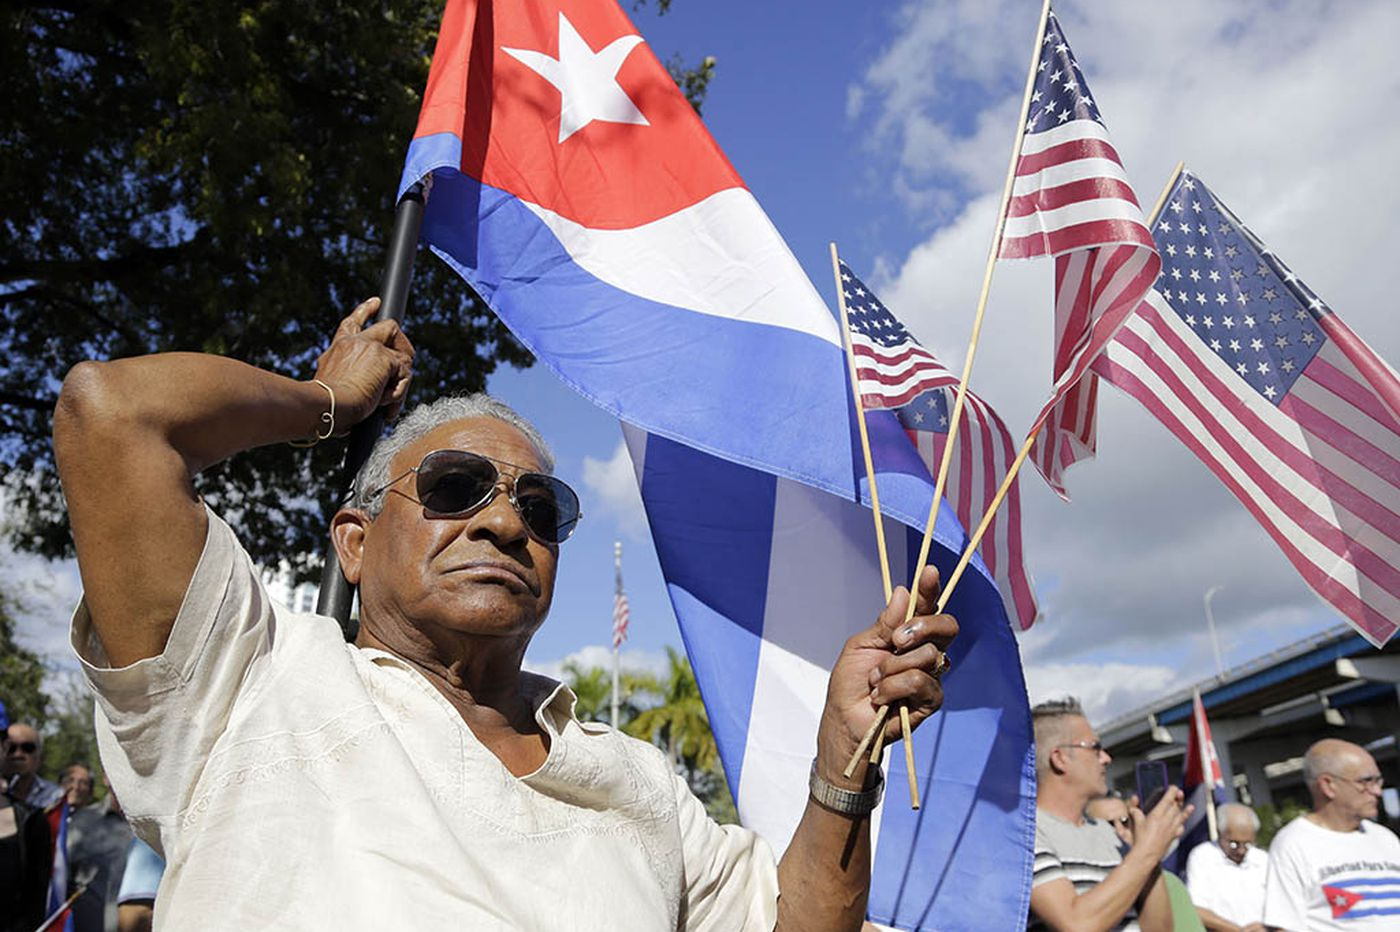 PhillyDeals: Poll says Cuban Americans favor normalized relations